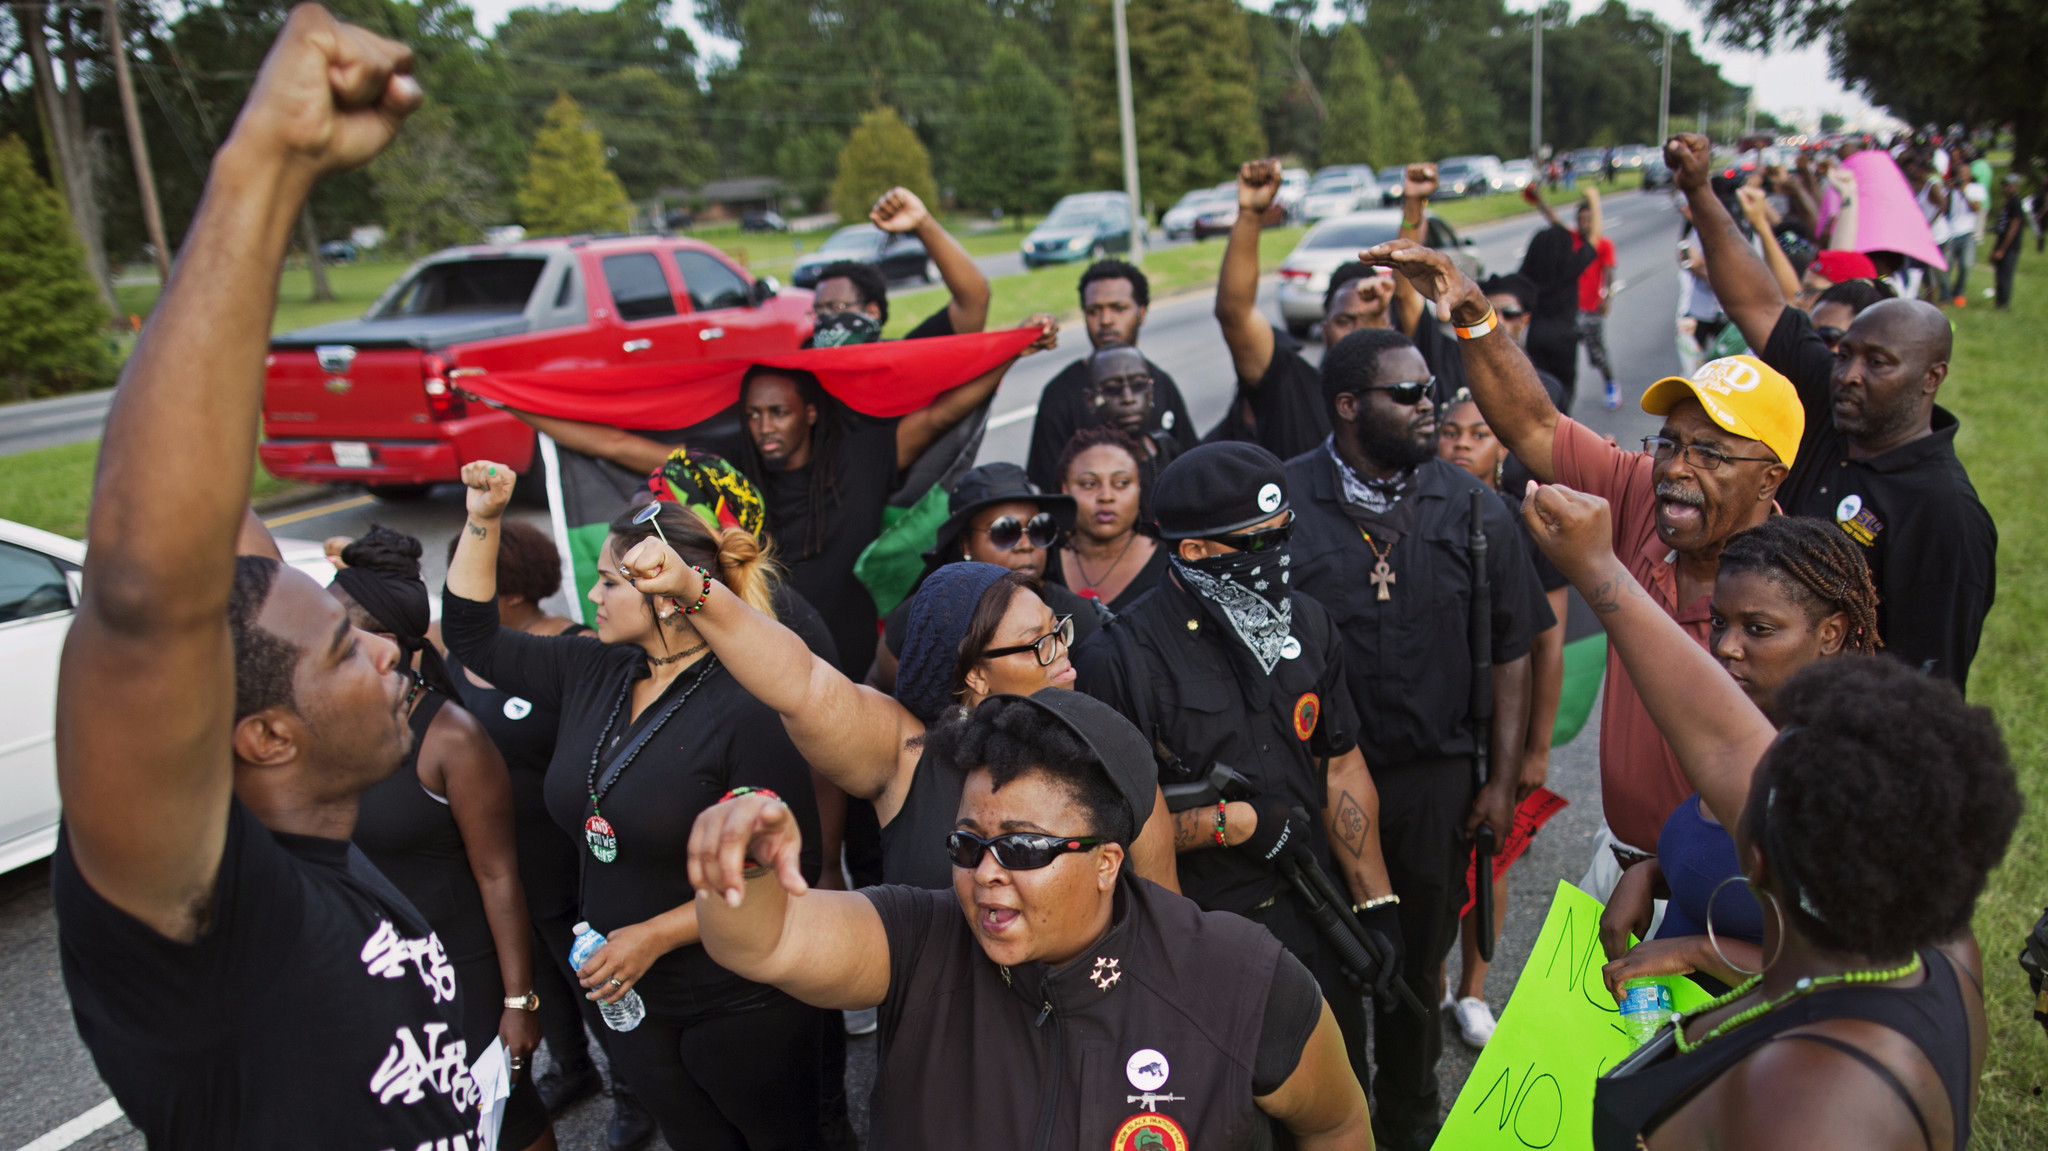 Members of the New Black Panther Party march in Louisiana following the death there of Alton Sterling.